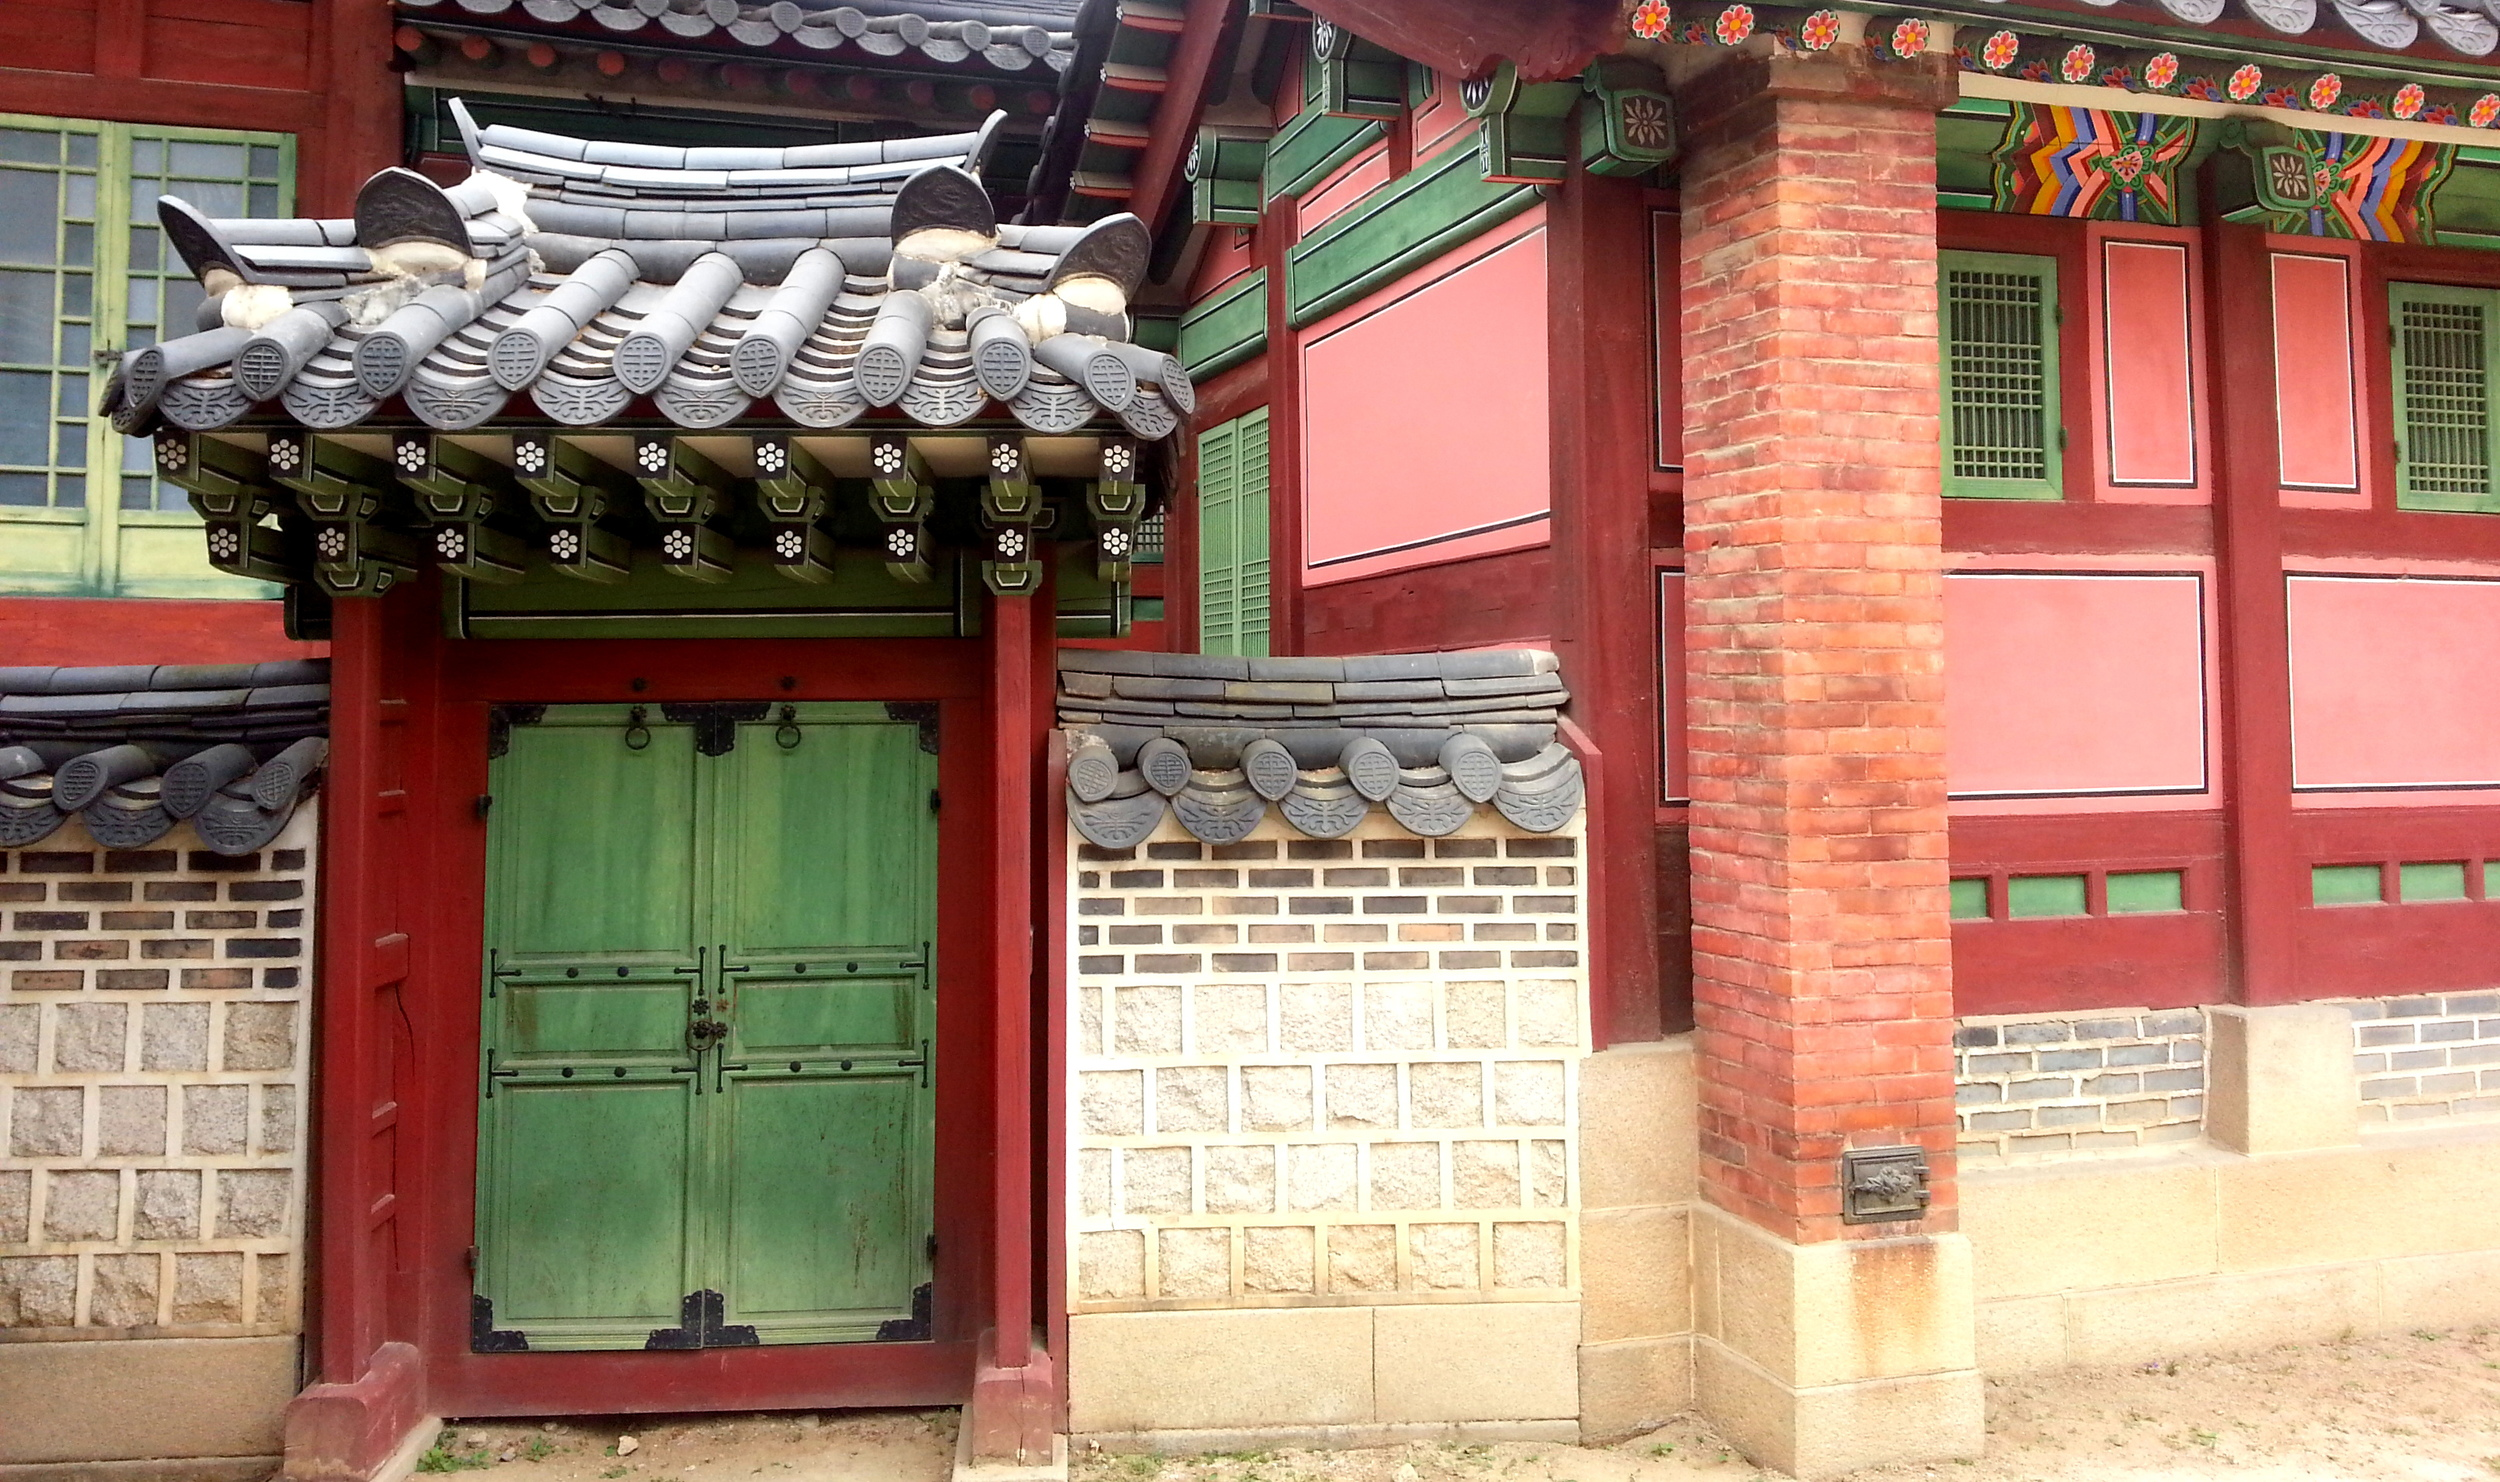 Queen's Palace in Seoul, Korea